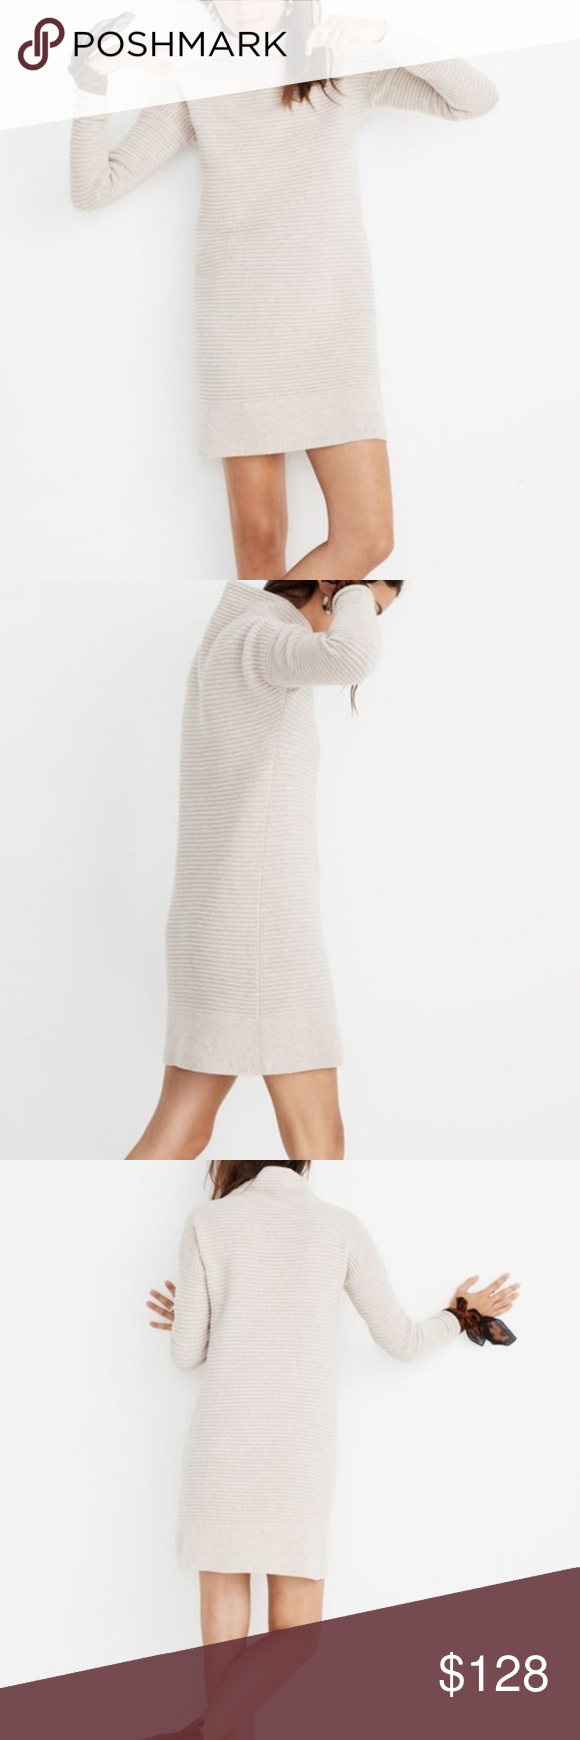 53893e37934 Madewell Skyscraper Sweater-Dress A sophisticated funnelneck sweater-dress  in a textural mix of